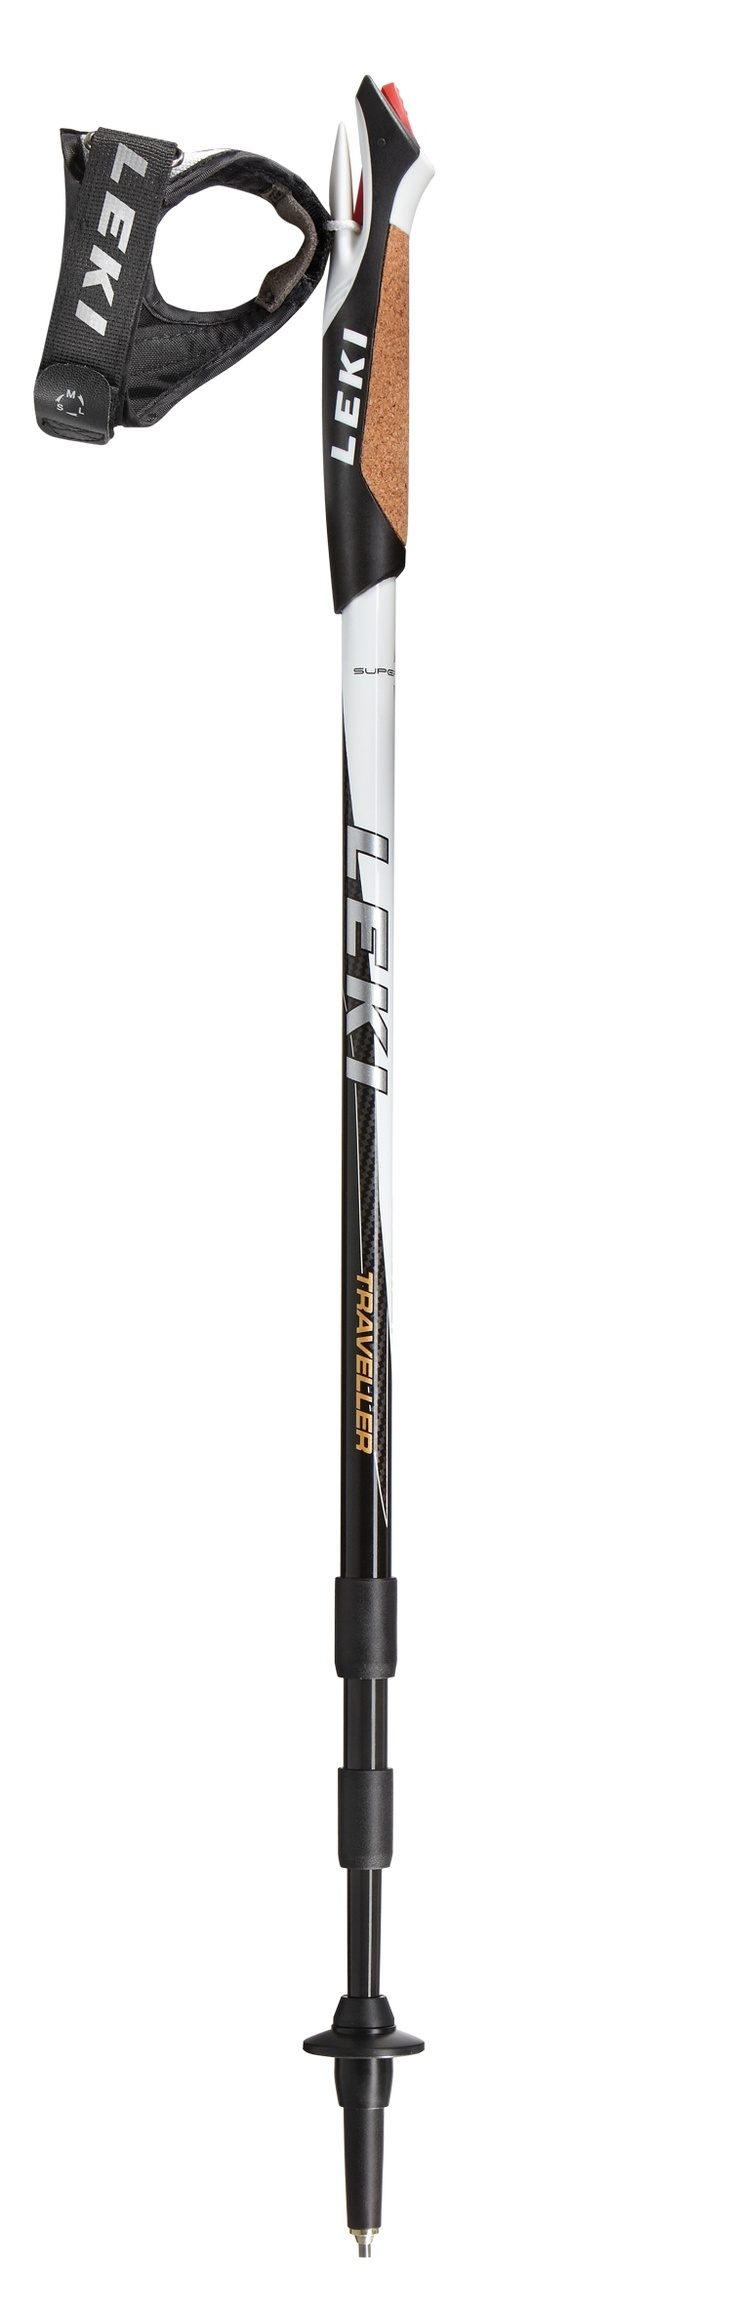 Leki Nordic Walking Poles fantastic whole body workout for everyone. If you think walking can't get your heart rate up this bad boys will prove otherwise. Also a great mobility improver particularly for arthritis.